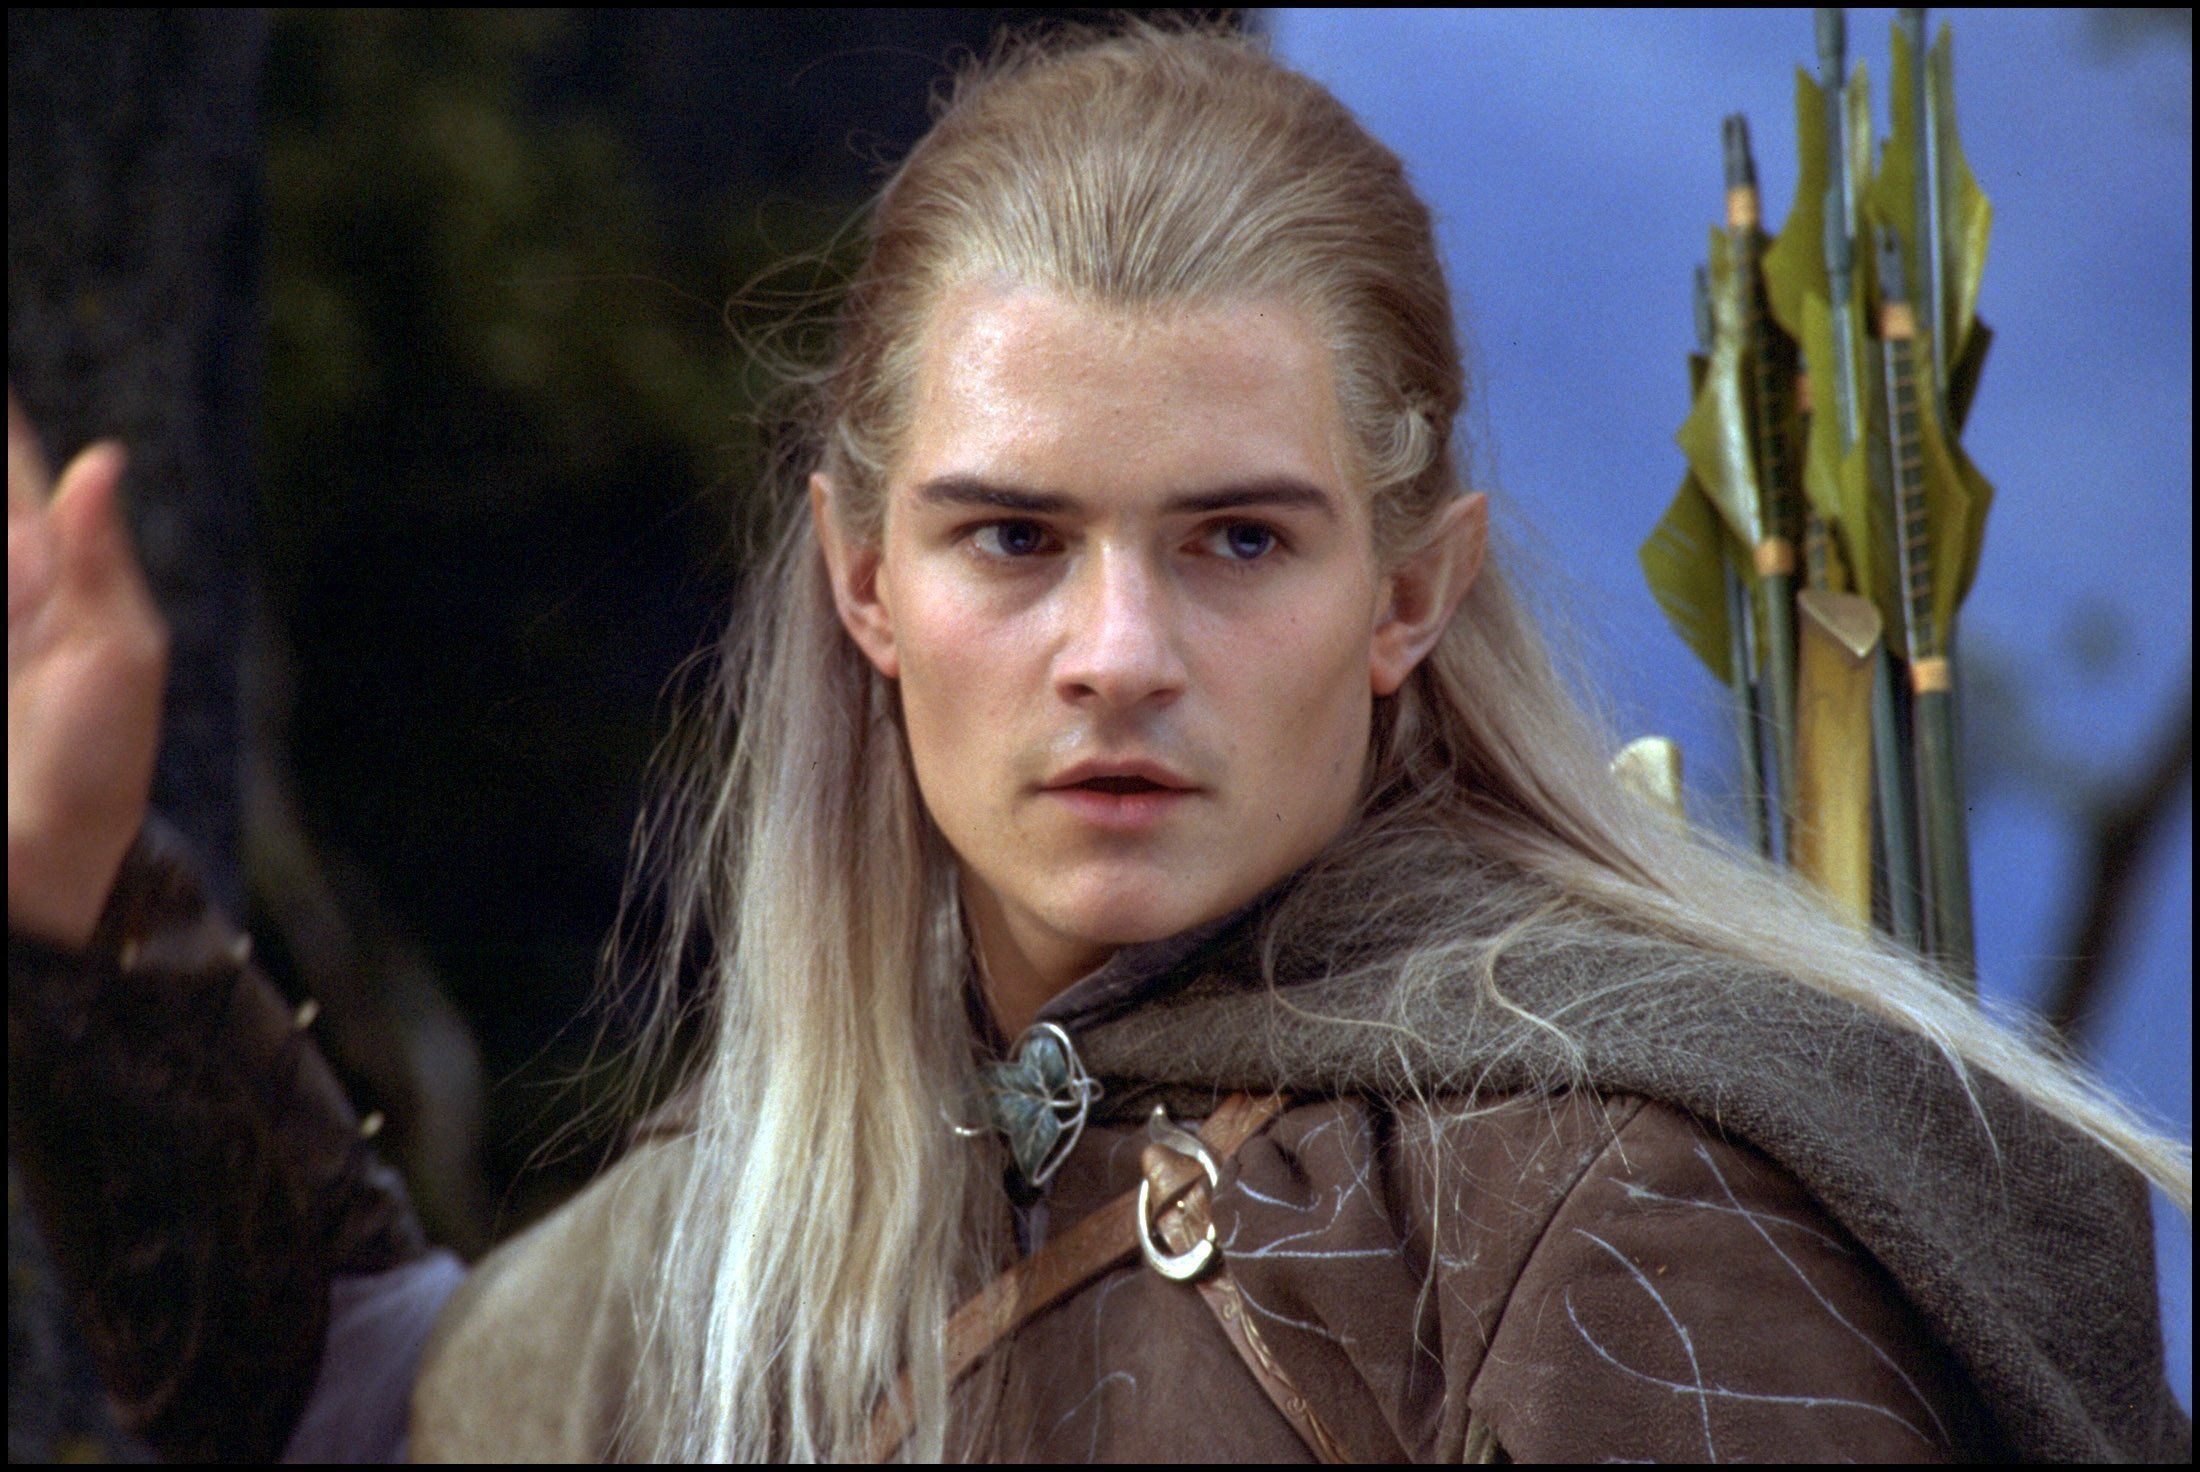 UNITED STATES - DECEMBER 01:  'The Lord of the Rings: The fellowship of the ring' In United States In December, 2001-Orlando Bloom as Legolas, one of nine in the Fellowship.  (Photo by 7831/Gamma-Rapho via Getty Images)